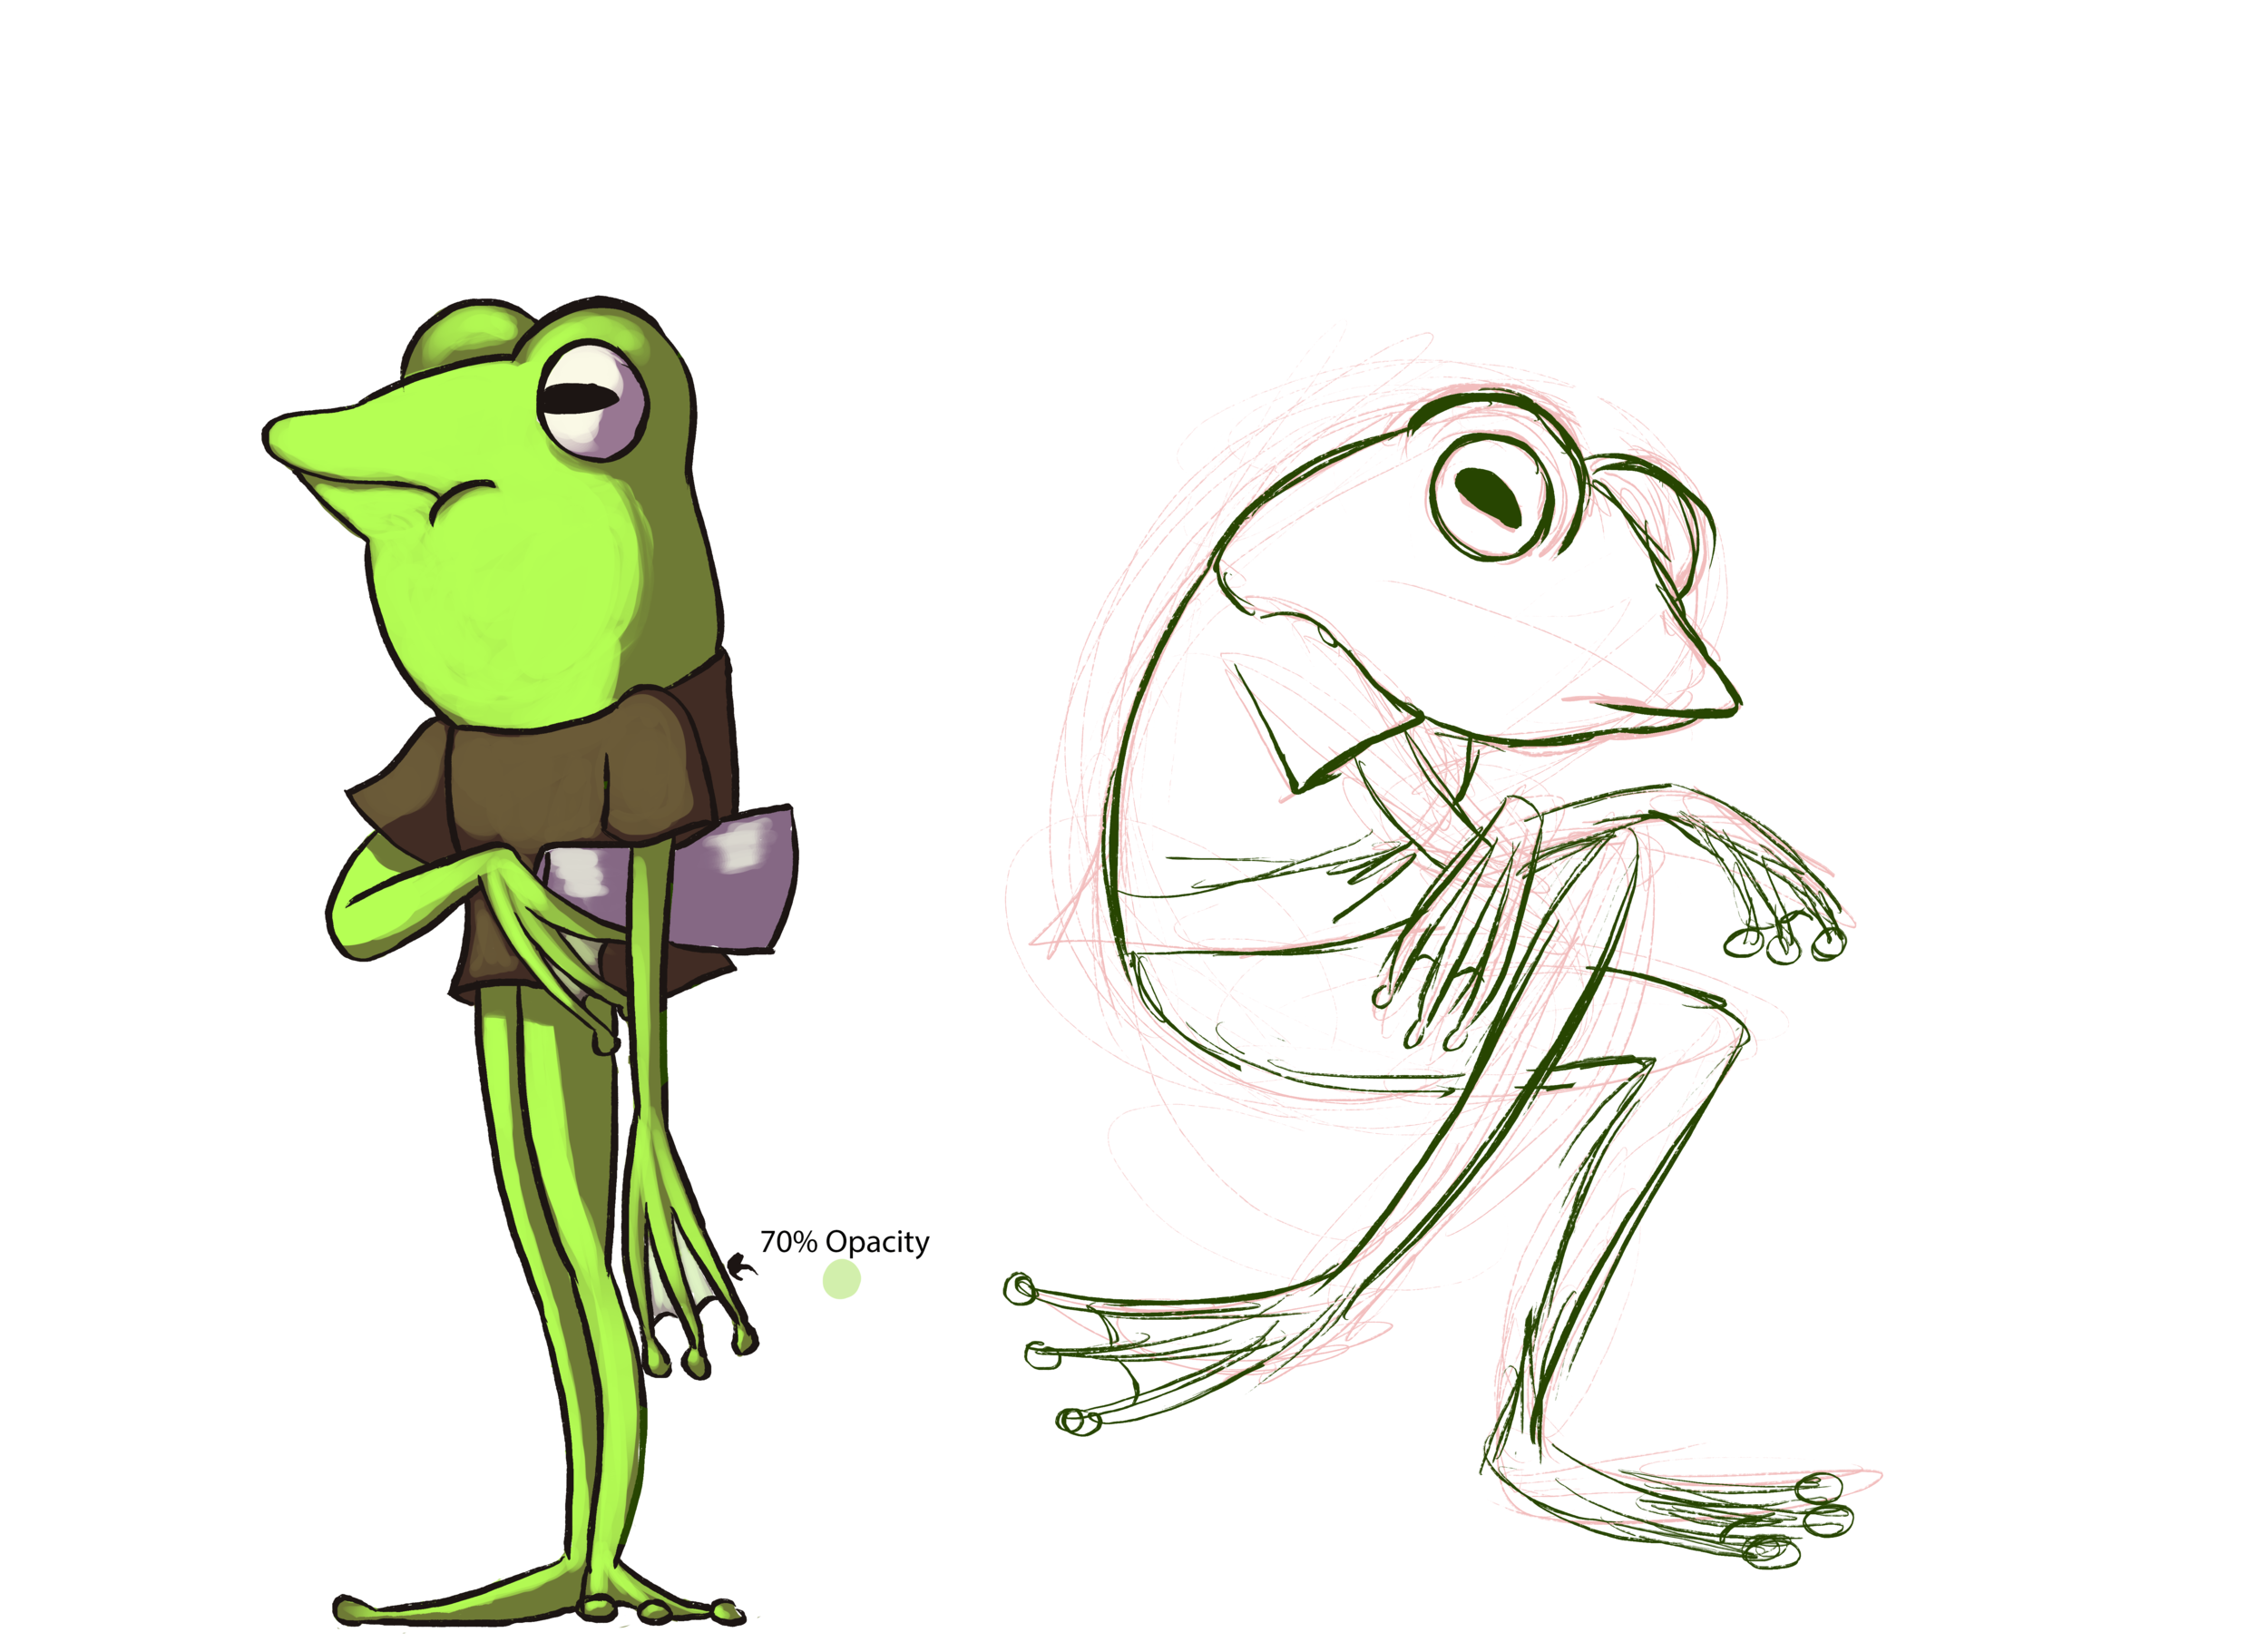 Frog_01.png